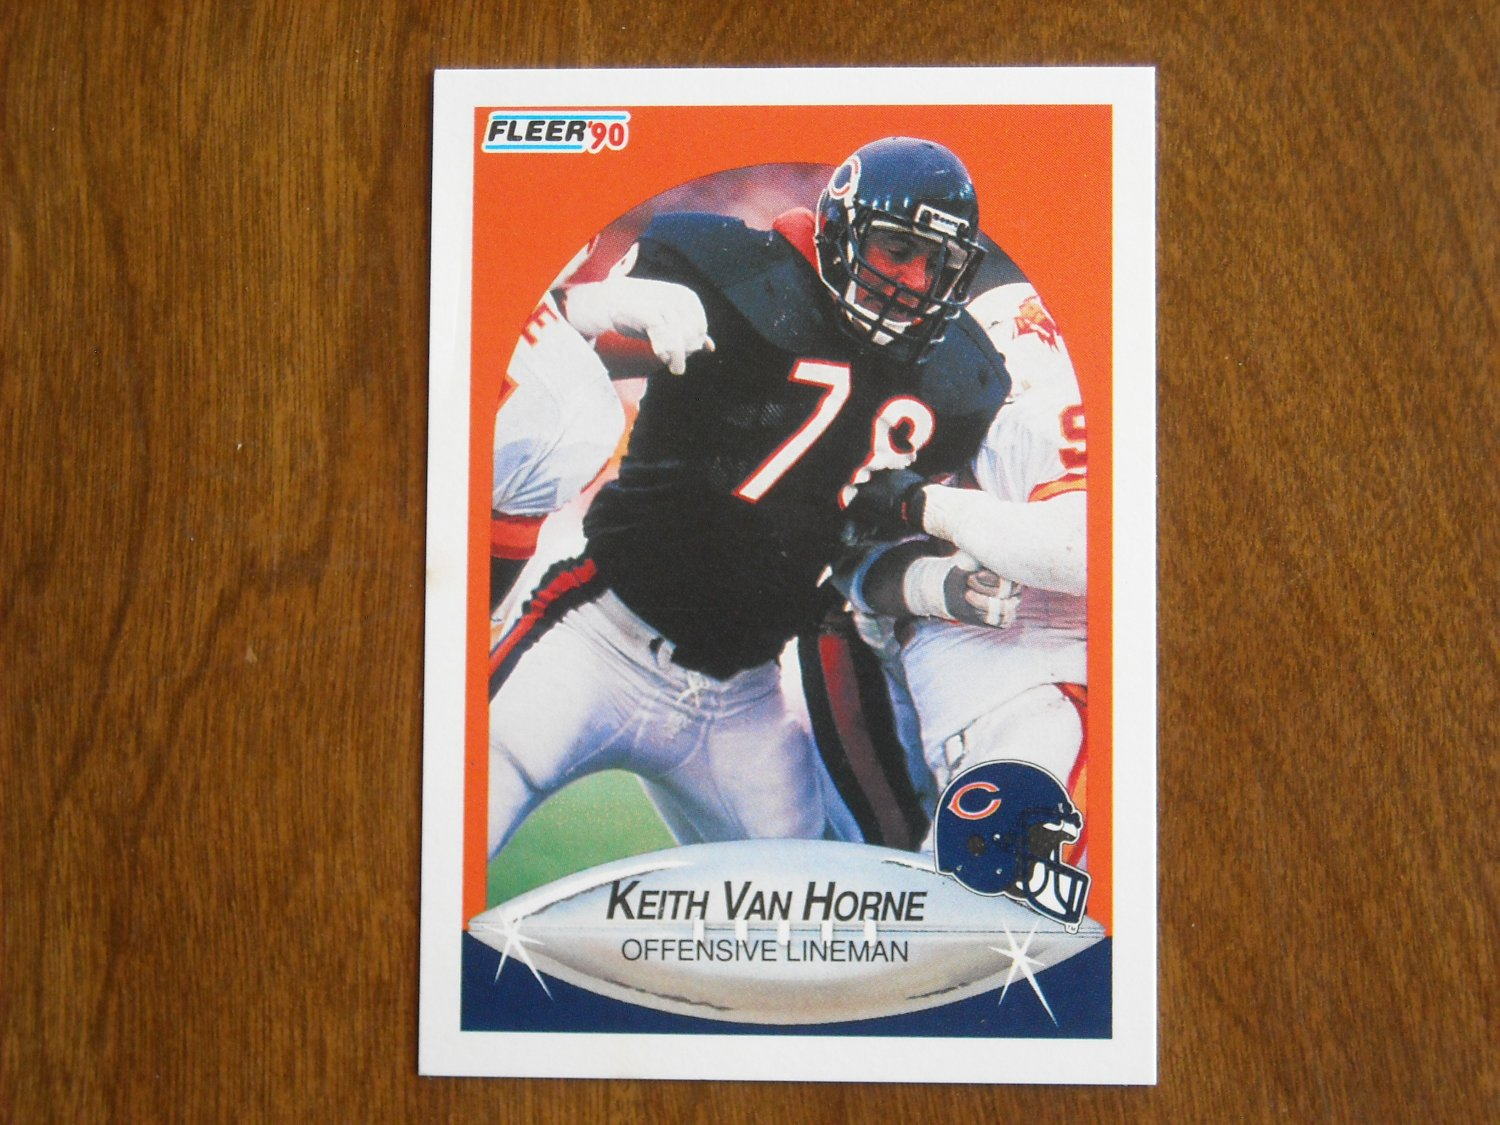 Keith Van Horne Chicago Bears Offensive Lineman Card No. 302 - 1990 Fleer Football Card